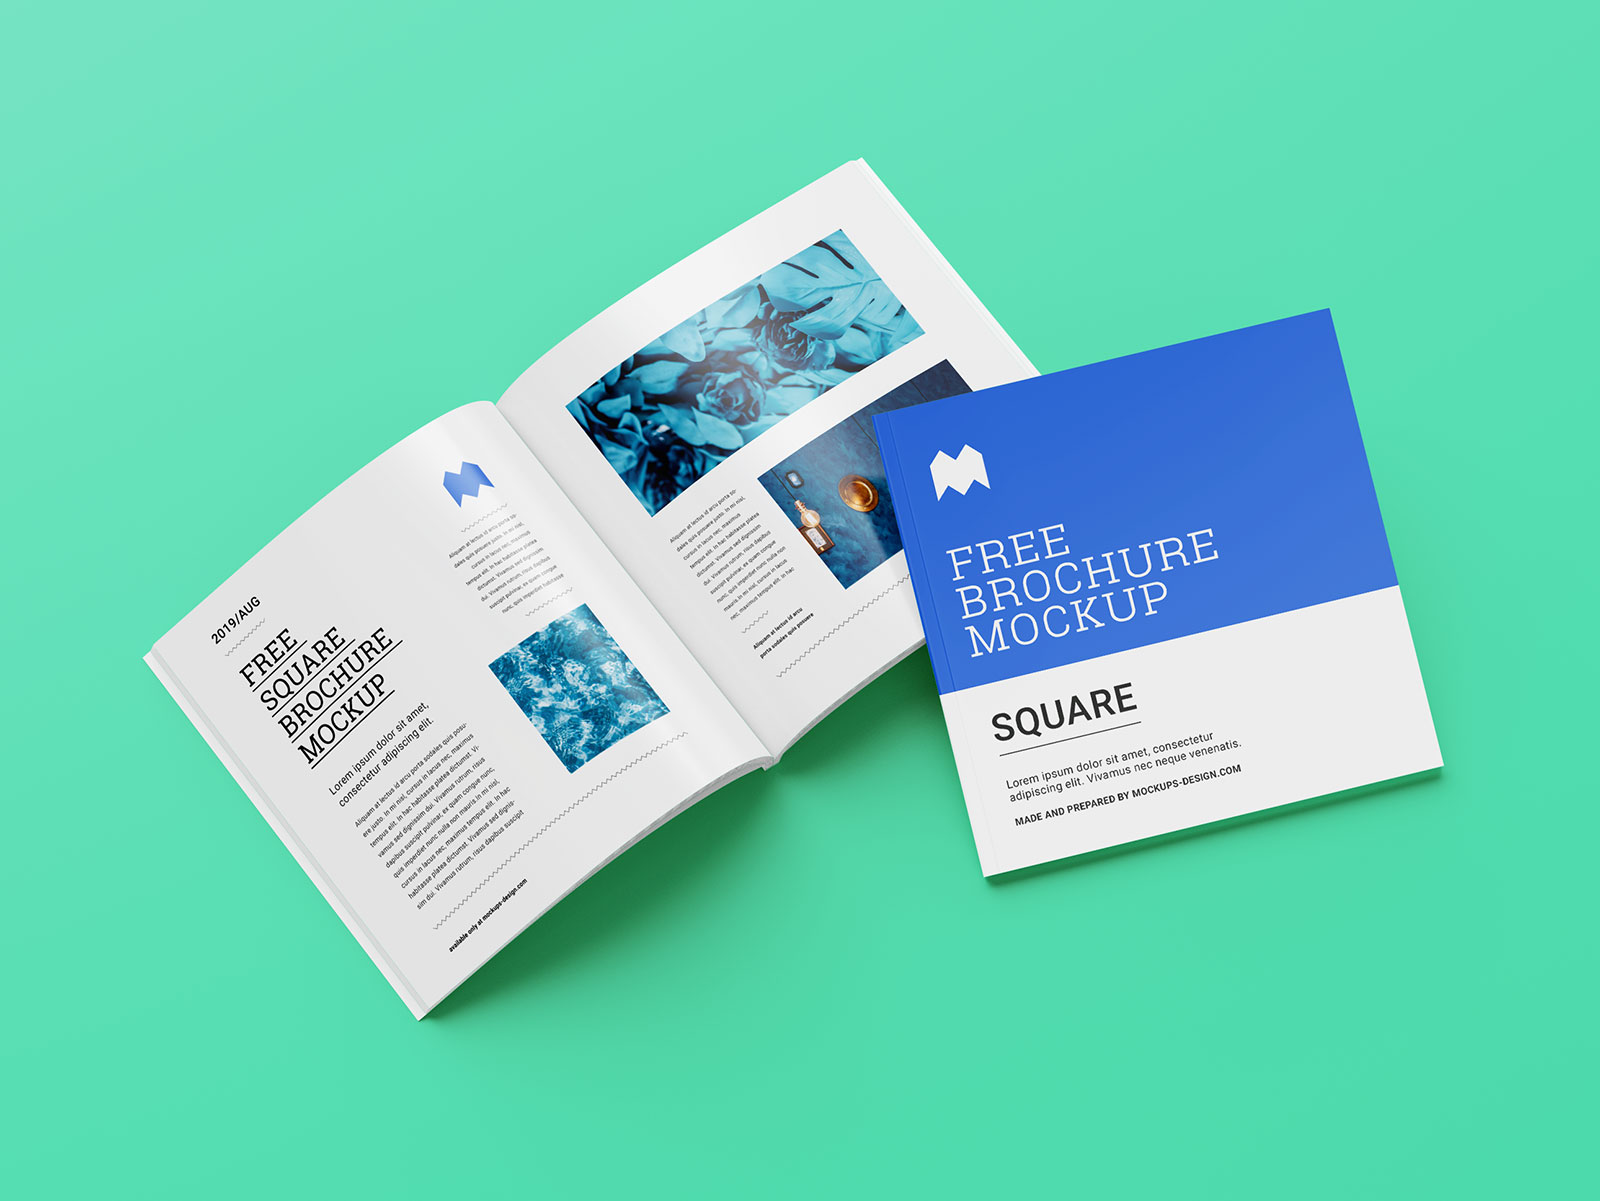 Free Perfect Binding Softcover Square Brochure Mockup Psd Set